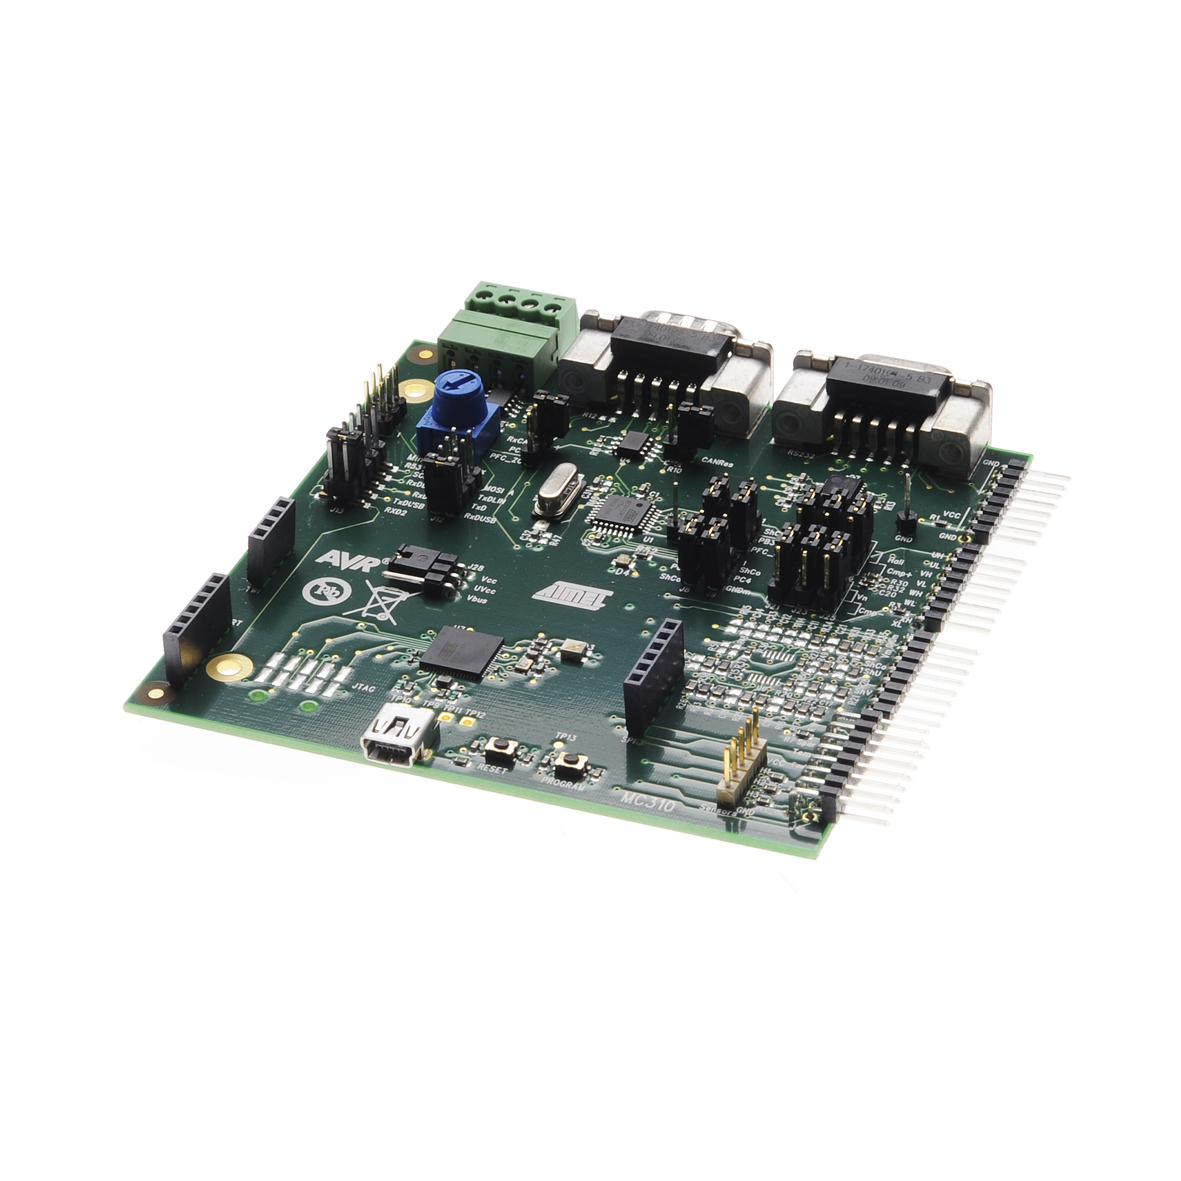 Development Tools Bare Circuit Board For The 8051 This Item Is Discontinued And There No Replacement Product Device